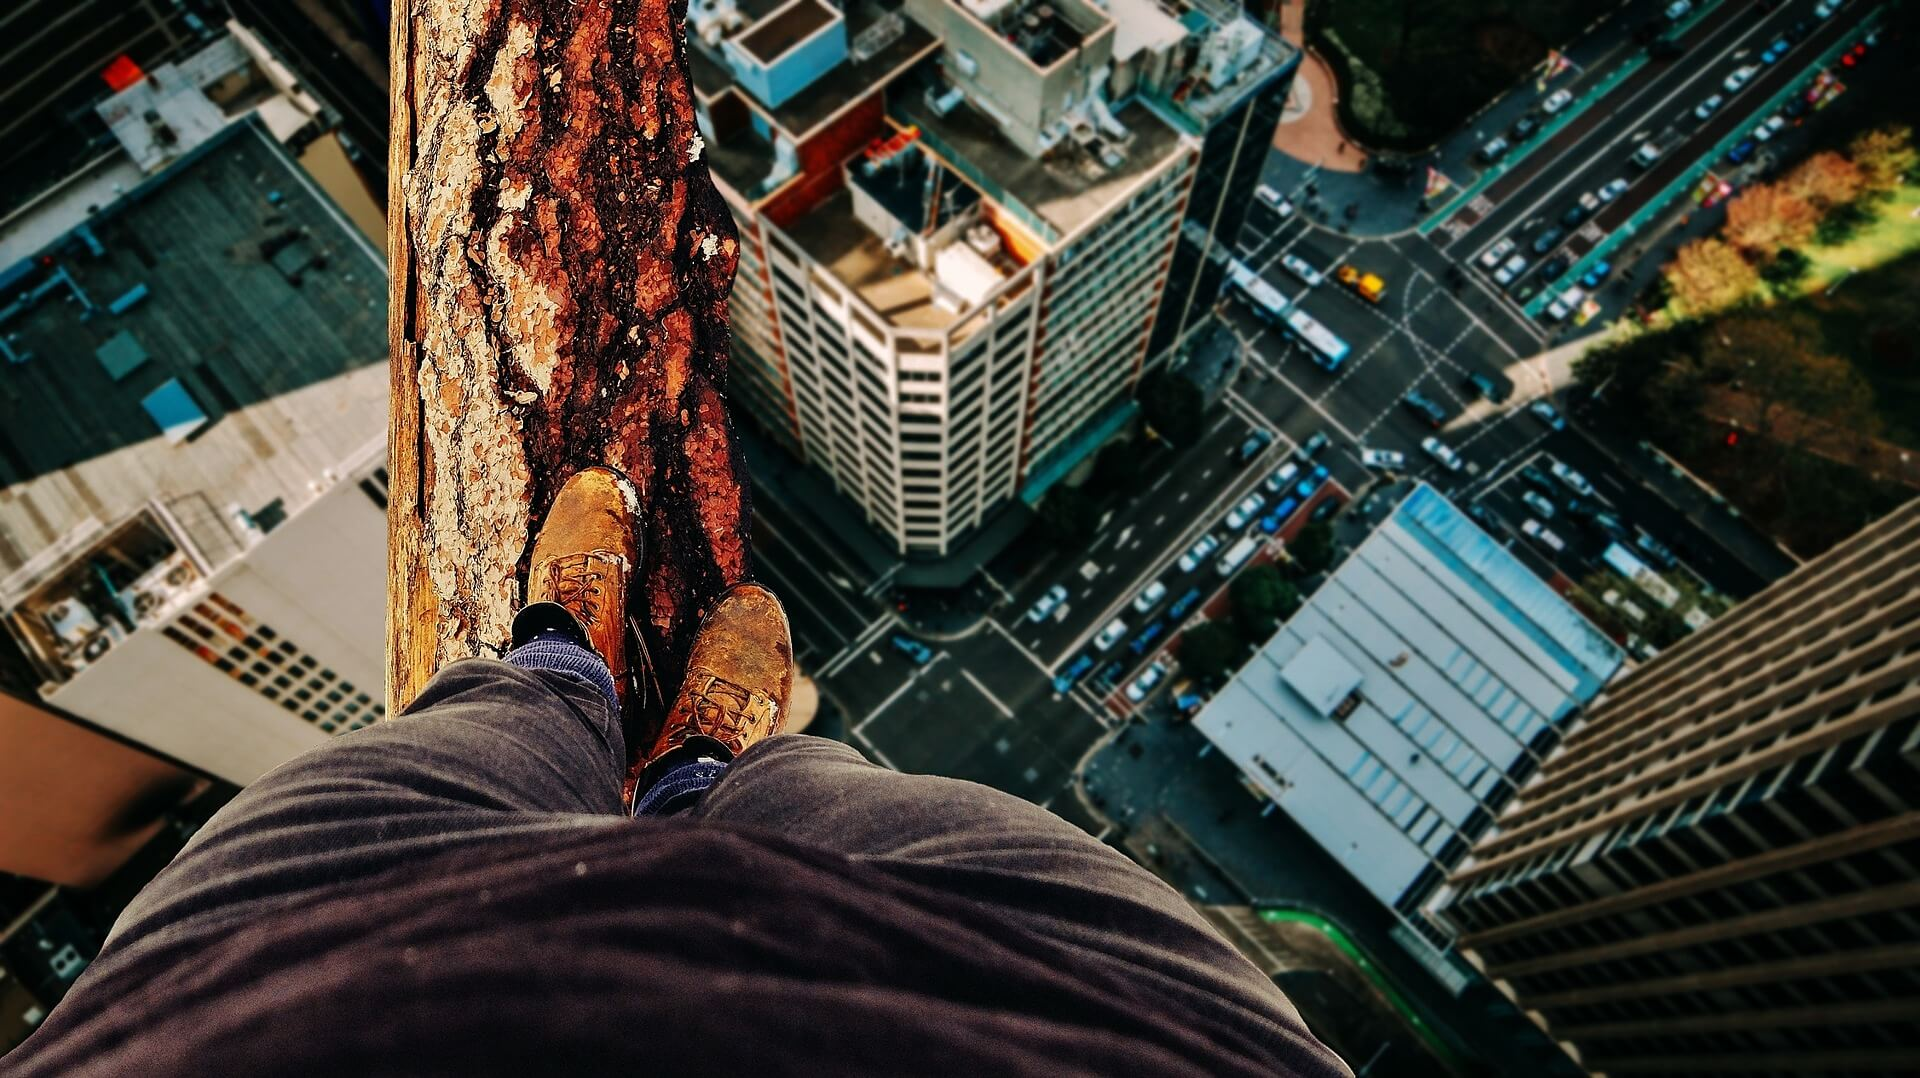 balancing on log above city